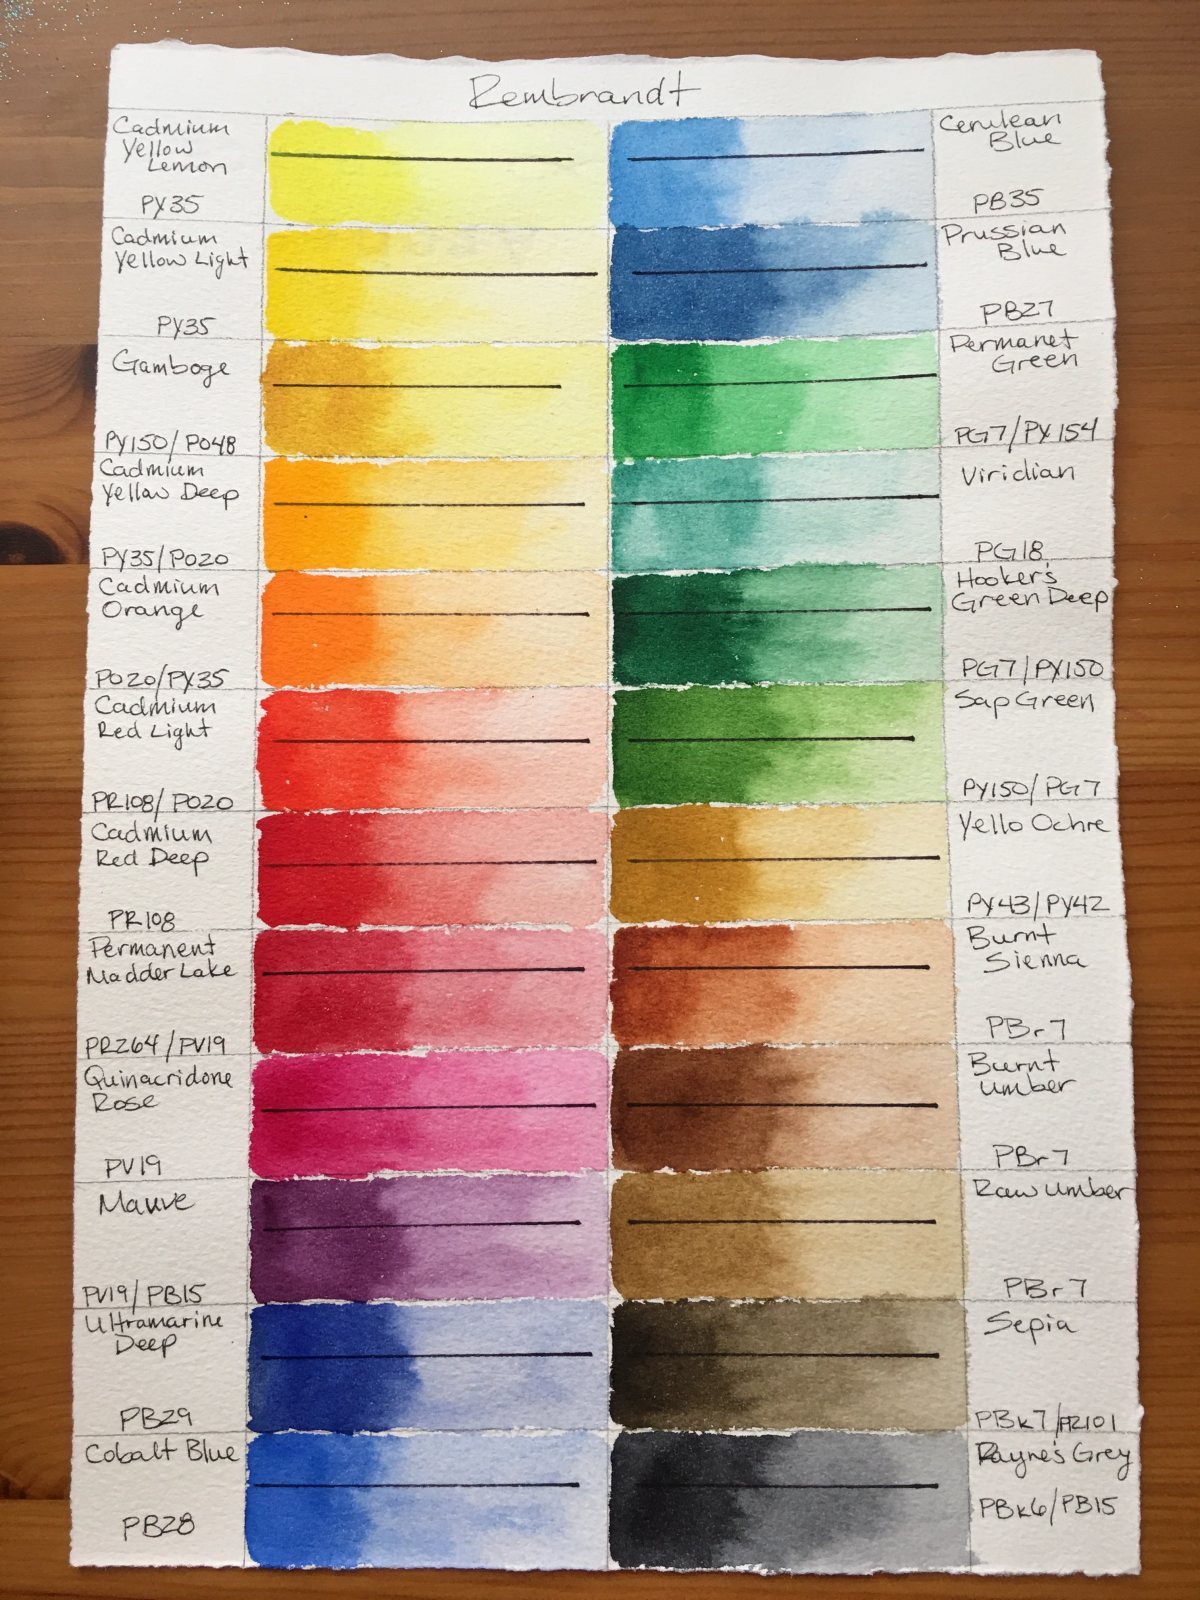 Royal Talens- Rembrandt Professional Deluxe Watercolor Box Set- 24 half pans with red sable size 6 brush, watercolour swatch